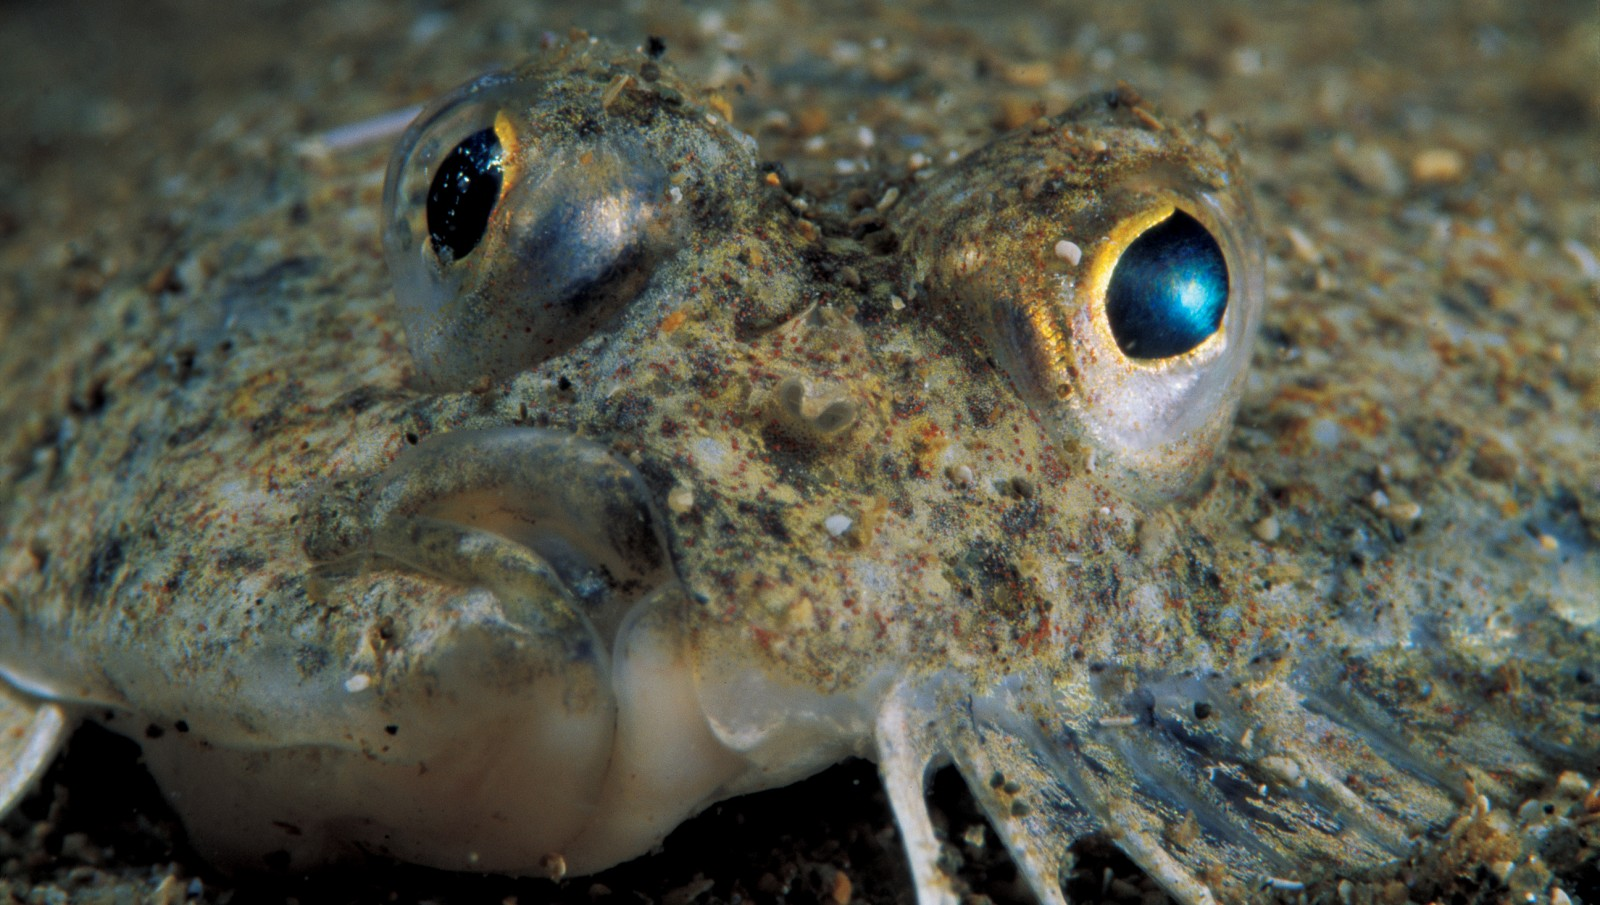 Flounder lie buried in surface sand, lying in wait to gobble crabs and small fish that wander too close to their snouts.